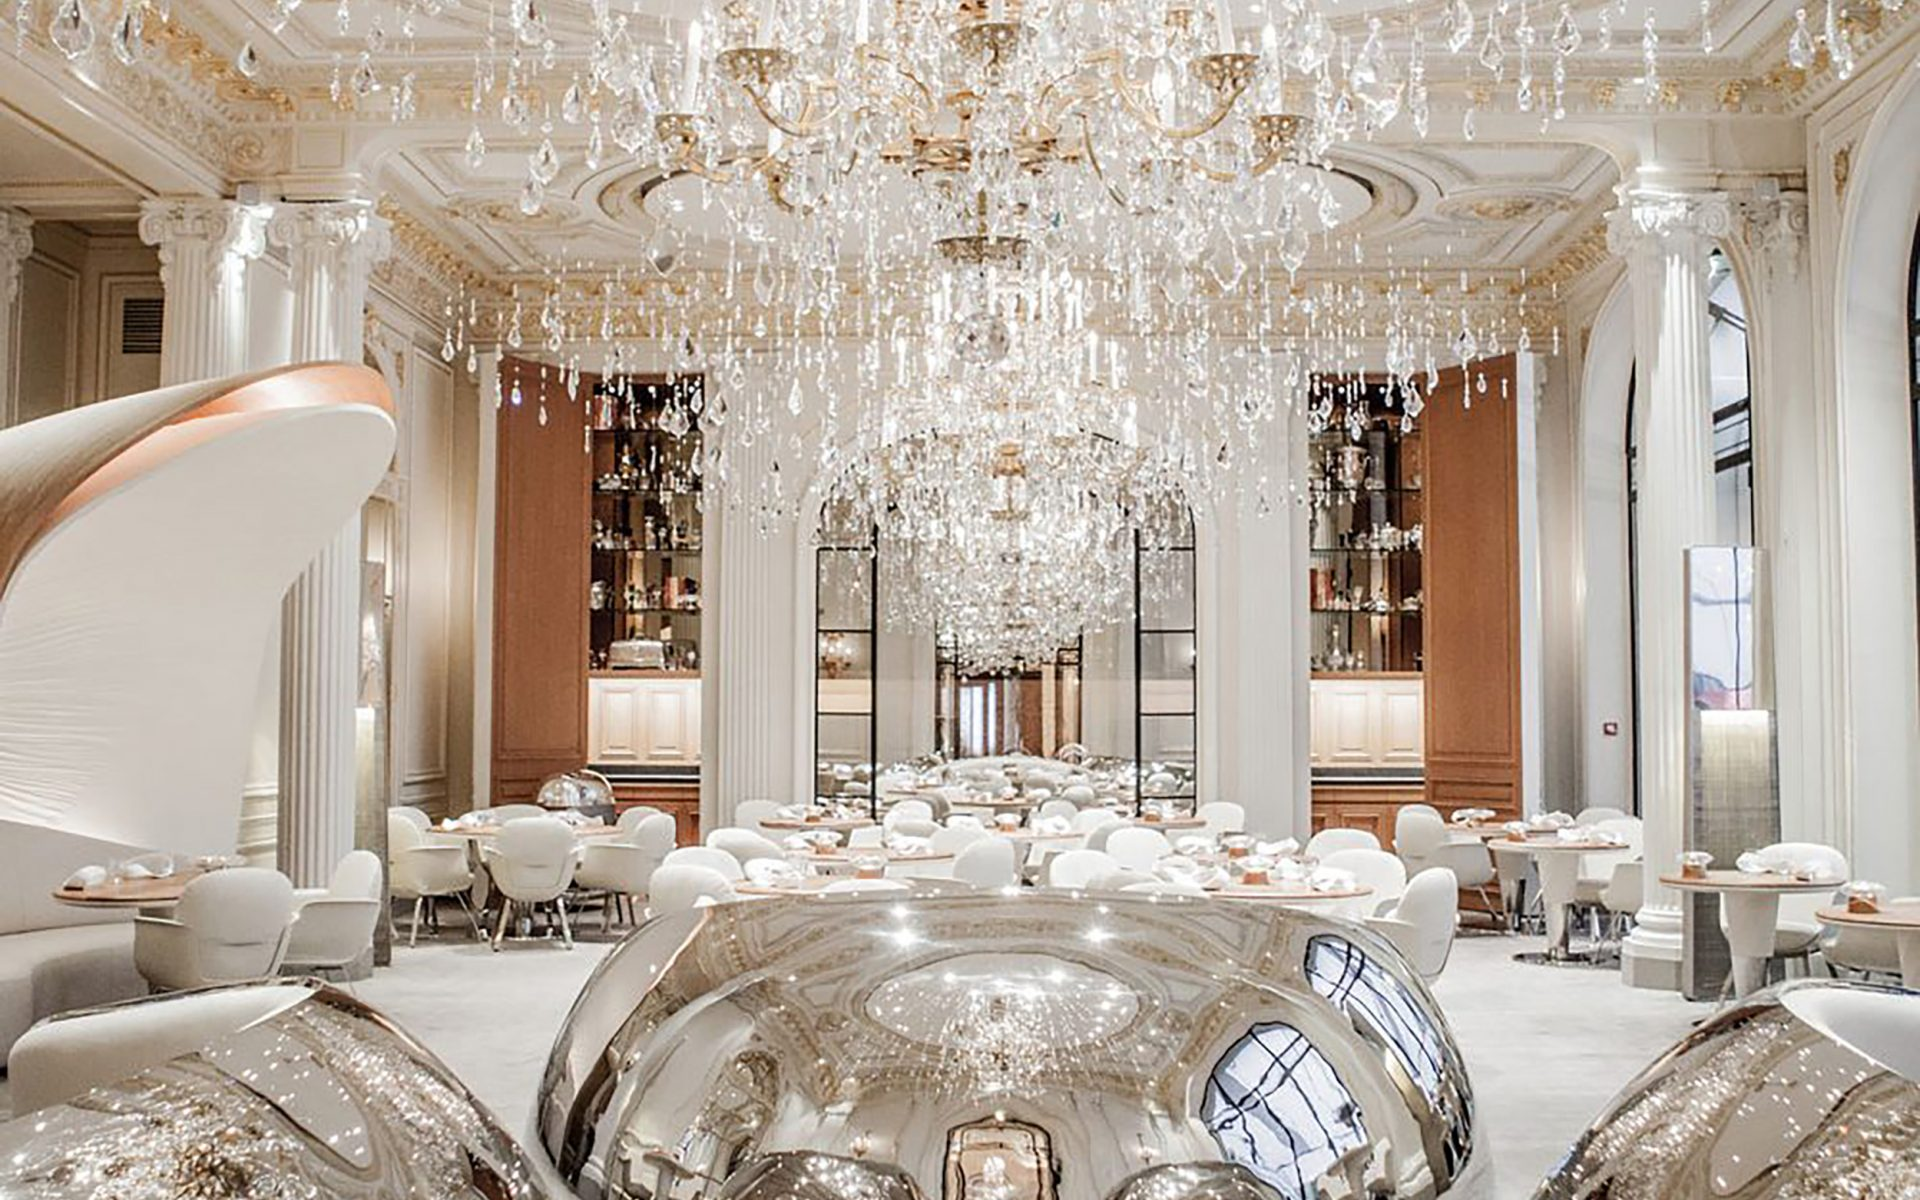 9 of the most beautiful restaurants in paris galerie for 1920s hotel decor